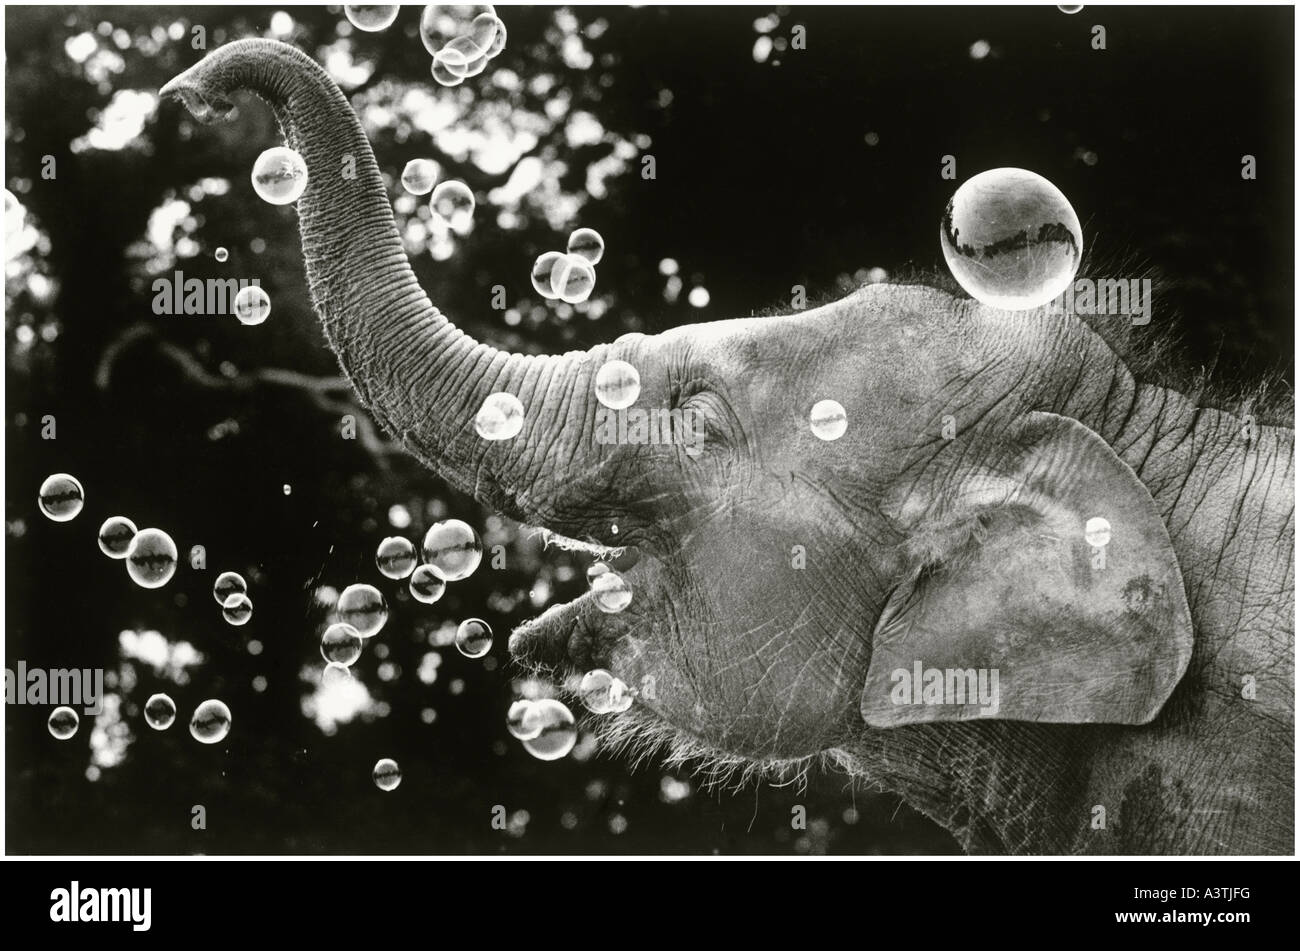 Bella the baby elephant playing with bubbles. - Stock Image